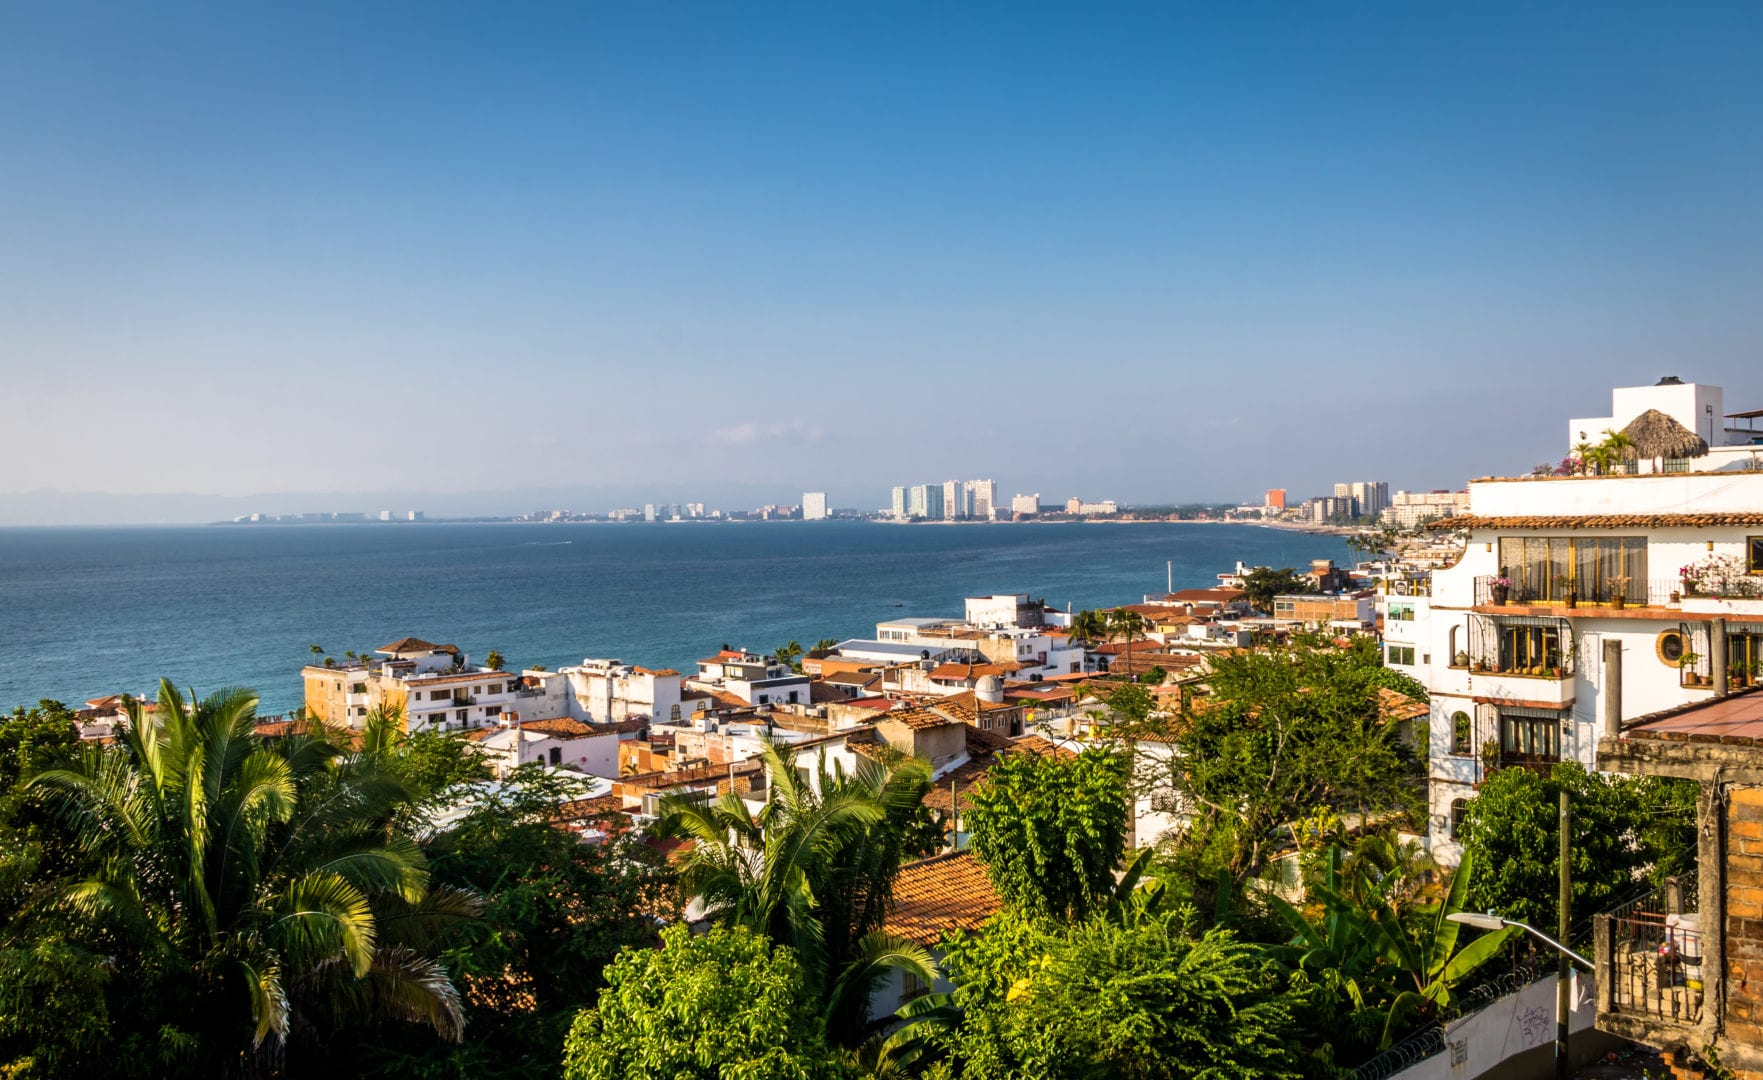 Hotels in Puerto Vallarta